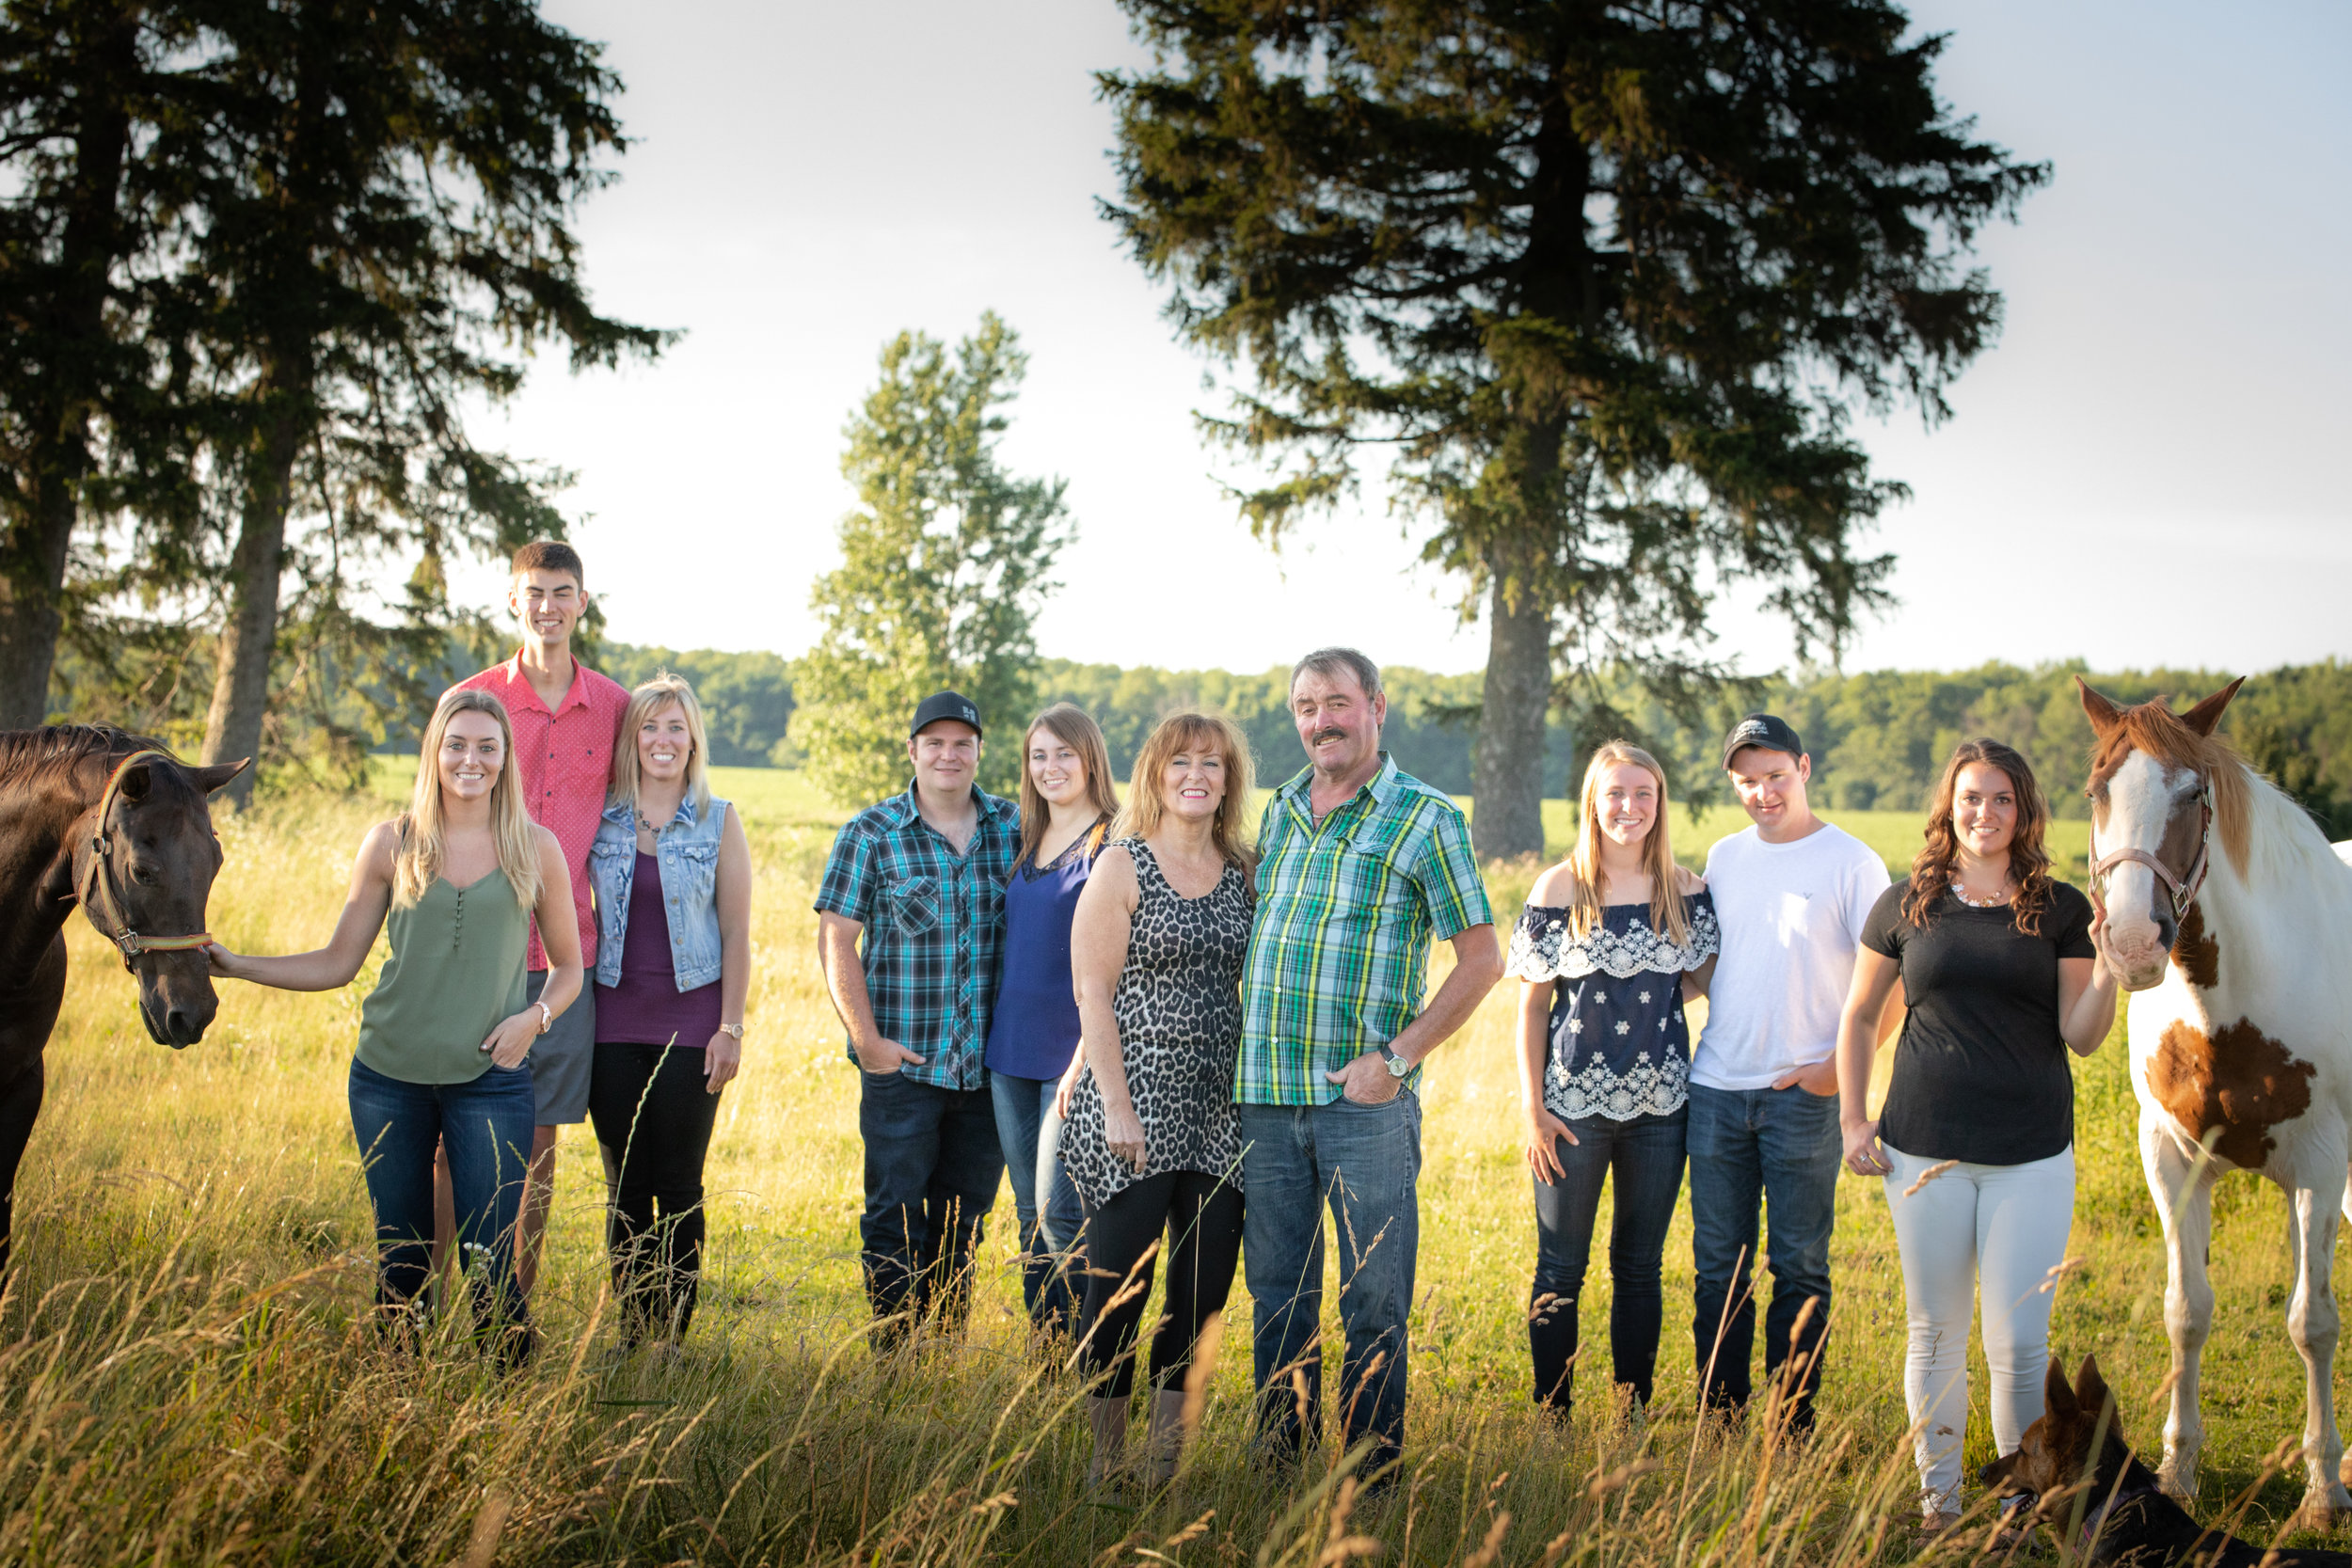 outdoor-Family-horses-agricultural-photographer-jodie-aldred-photography-rural-country-farm-farmers-ontario-london-huron-middlesex-elgin-chatham-elgin.jpg